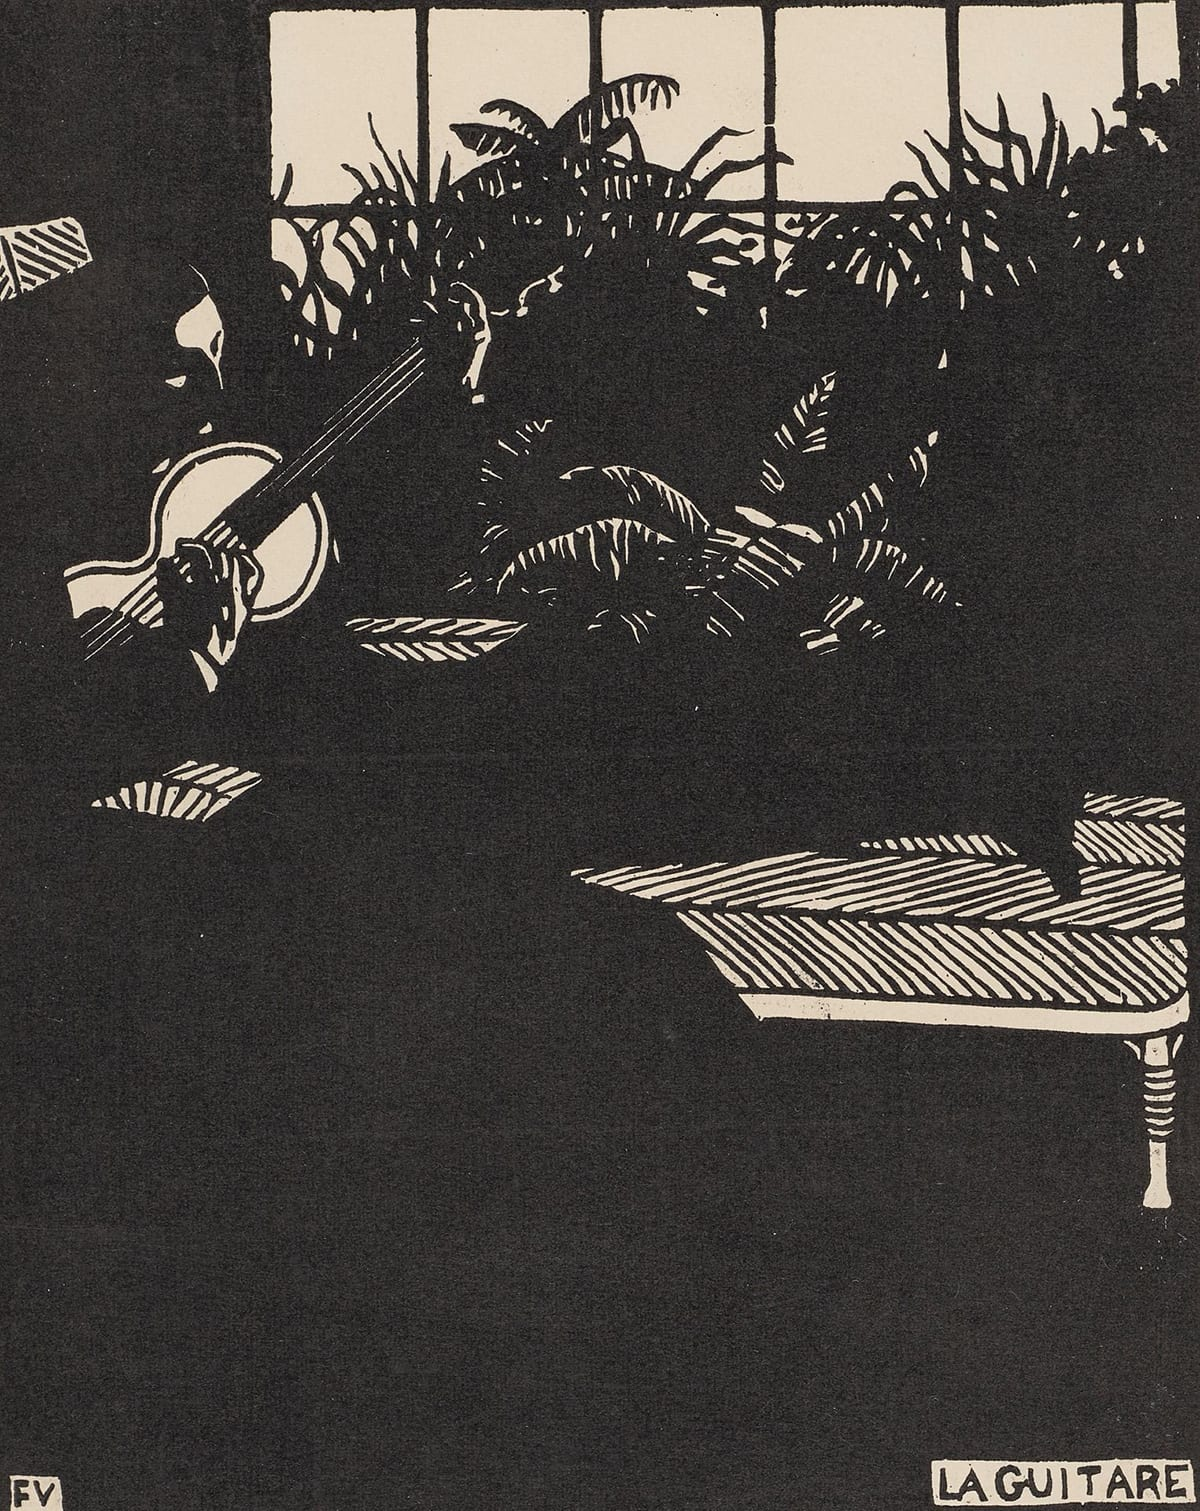 "La Guitare, Felix Vallotton, 8 13/16 x 7 1/16 inches, woodcut on wove paper. A vertical rectangular print rendered in black on cream paper showing a man playing a guitar in the shadows of a room with ferns and a large window. Most of this print is black with the details of the man, plants, a low table and the window in cream. The man sits at left with the guitar held high on his chest. His forehead, lowered eyes, hands, the face of the guitar are in cream. The rest of his figure is the black that continues to make up the surrounding room. To the right of the man there is a bank of ferns set in front of a large paned window. The windowpanes are cream with black mullions. The cream paper shows highlights of the fern fronds amid a mostly black mass of plants. Below the bank of ferns is a low table with a herringbone pattern picked out in black. The bottom quarter of the print is purely black with the exception of the black letters ""FV"" in a cream box at lower left and ""La Guitare"" at lower right, also seen with black letters on cream."